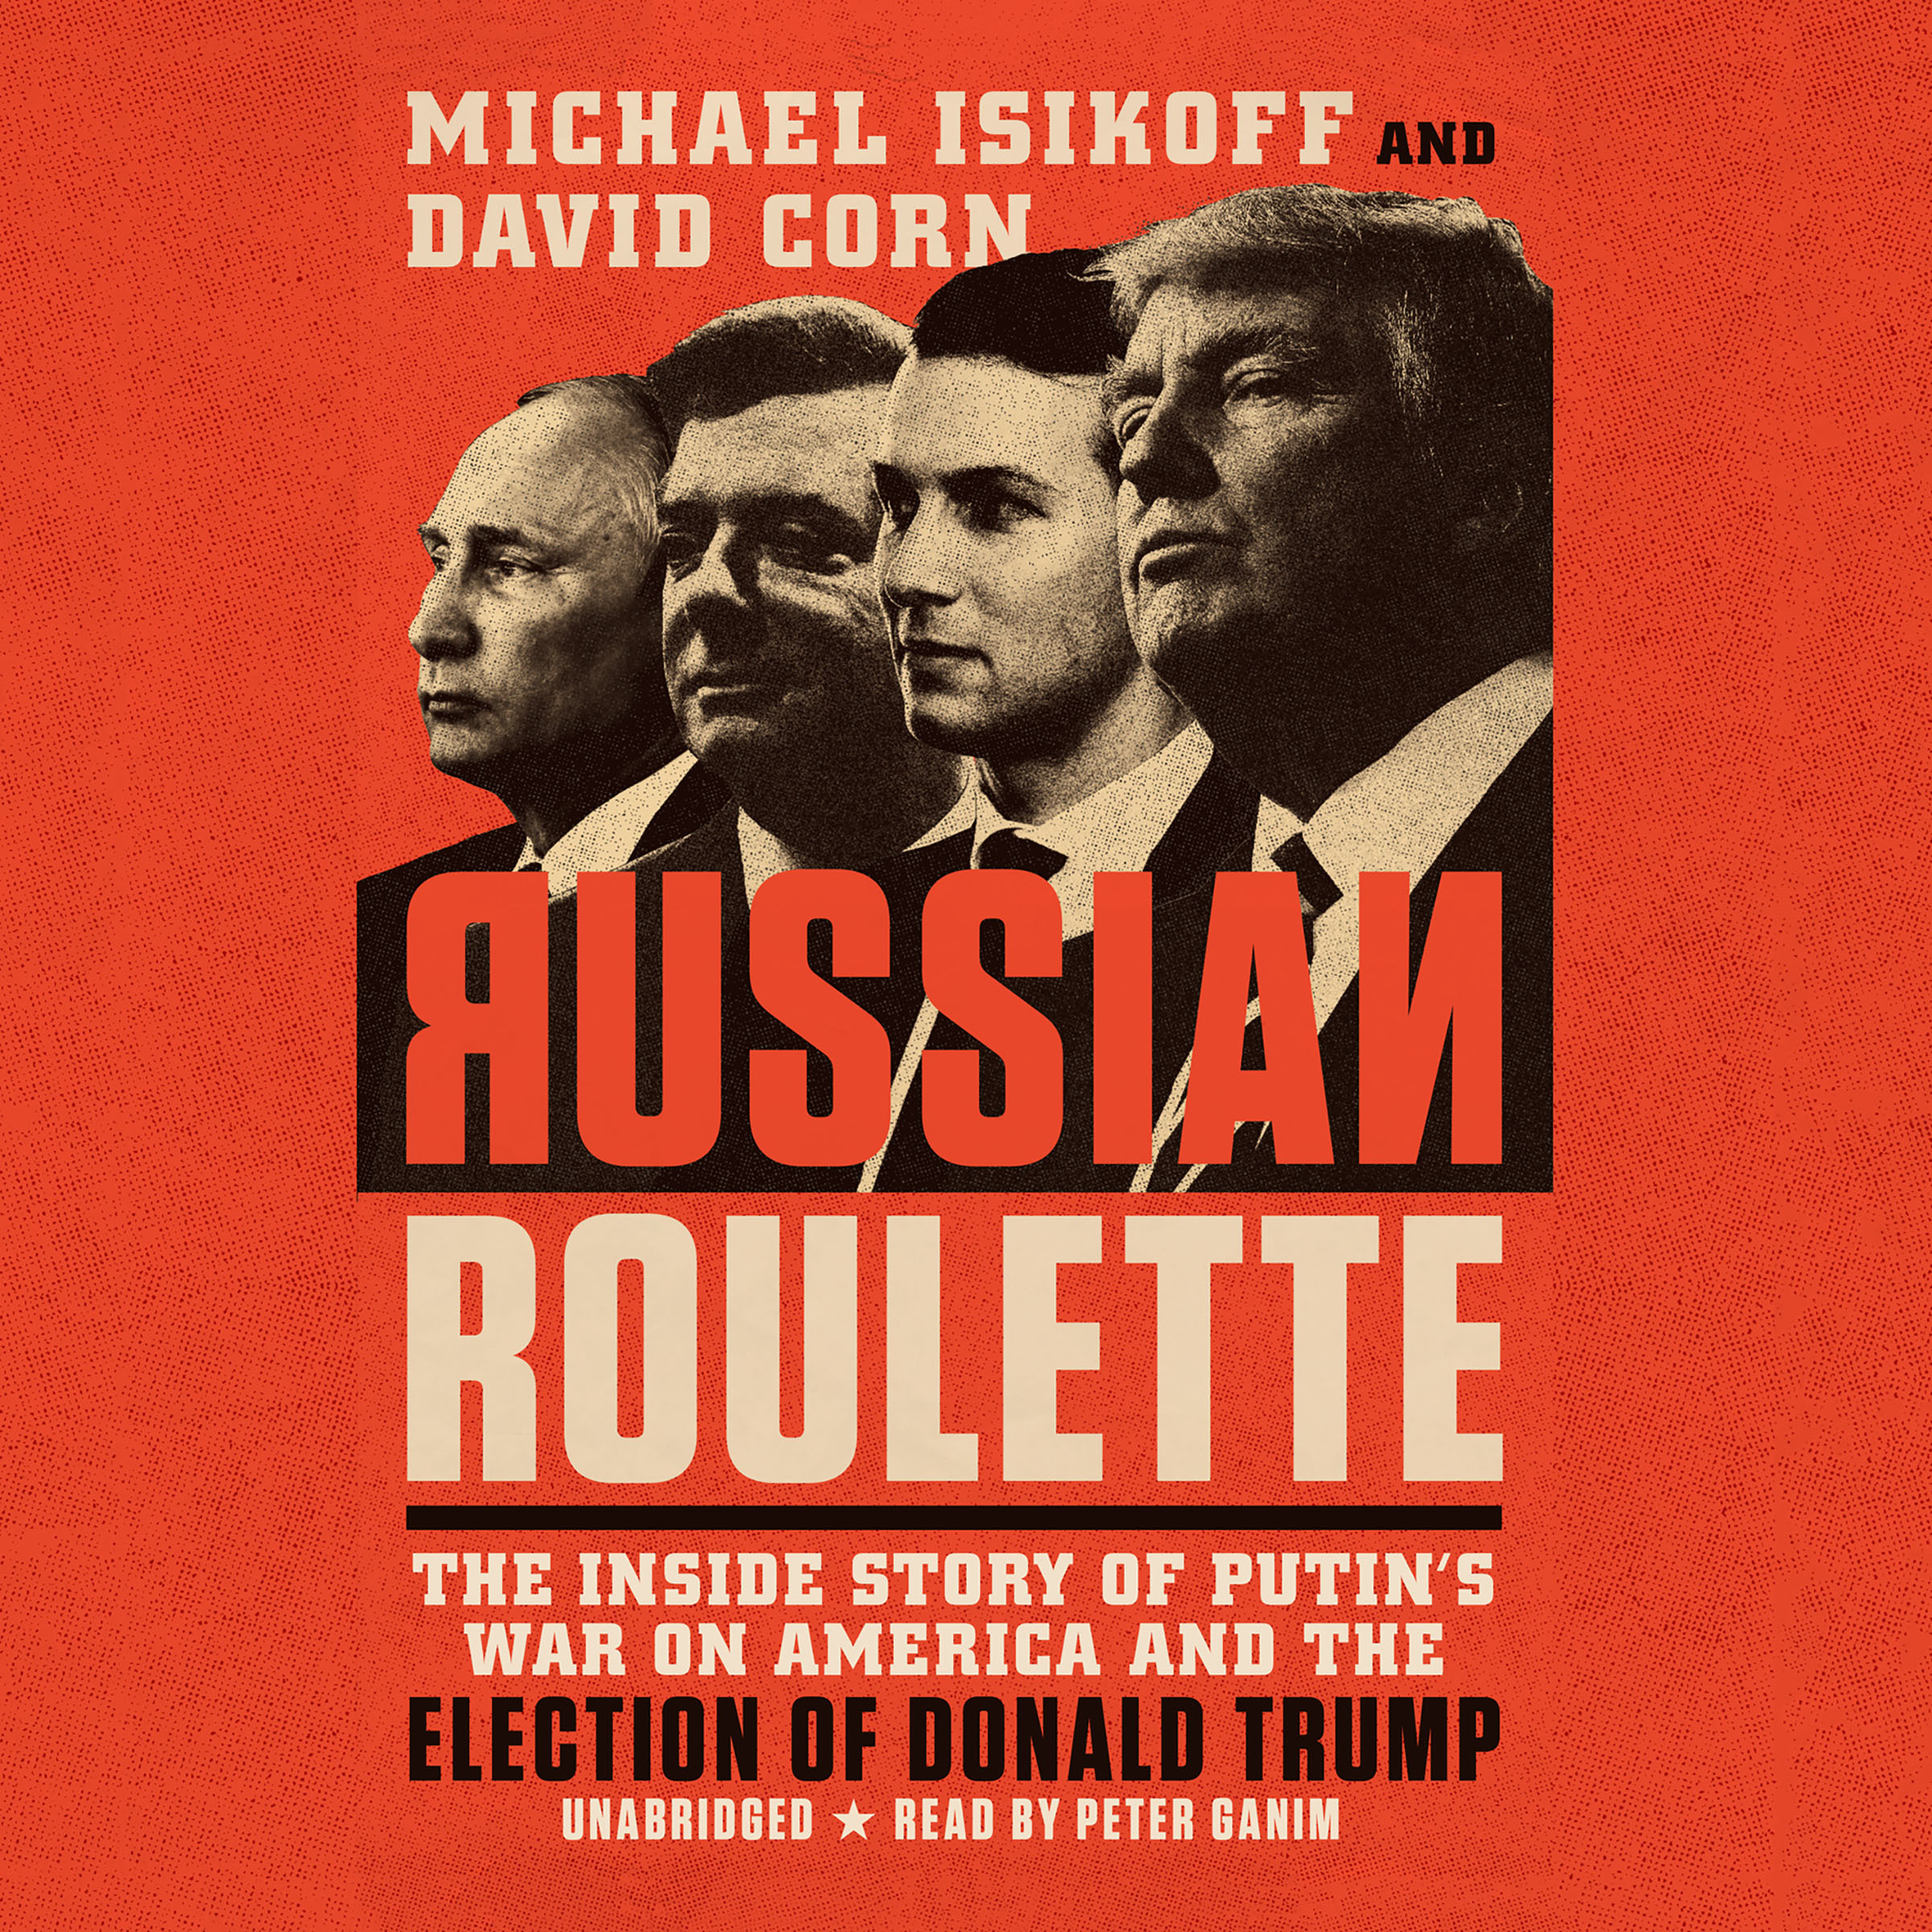 Printable Russian Roulette: The Inside Story of Putin's War on America and the Election of Donald Trump Audiobook Cover Art